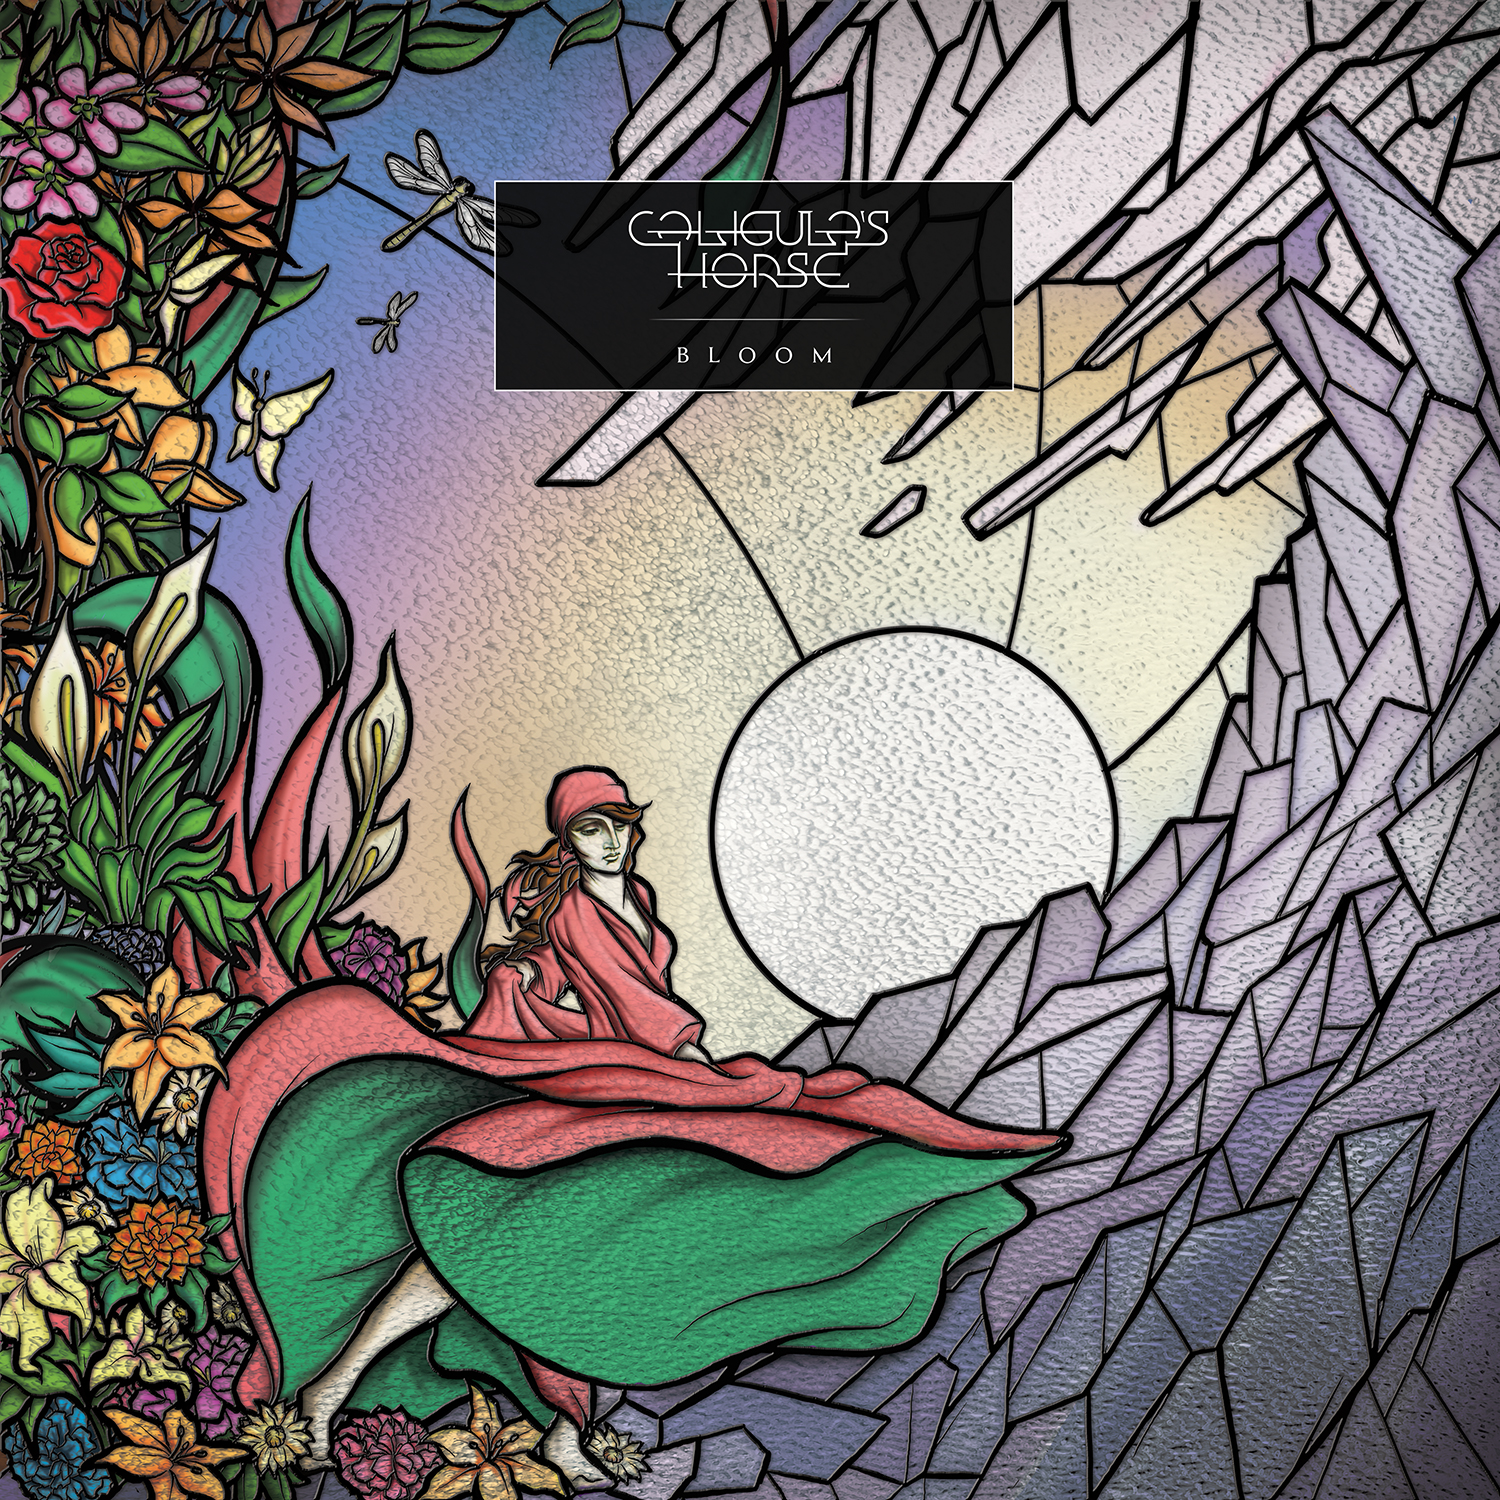 Caligula's Horse – Bloom [Things You Might Have Missed 2015]